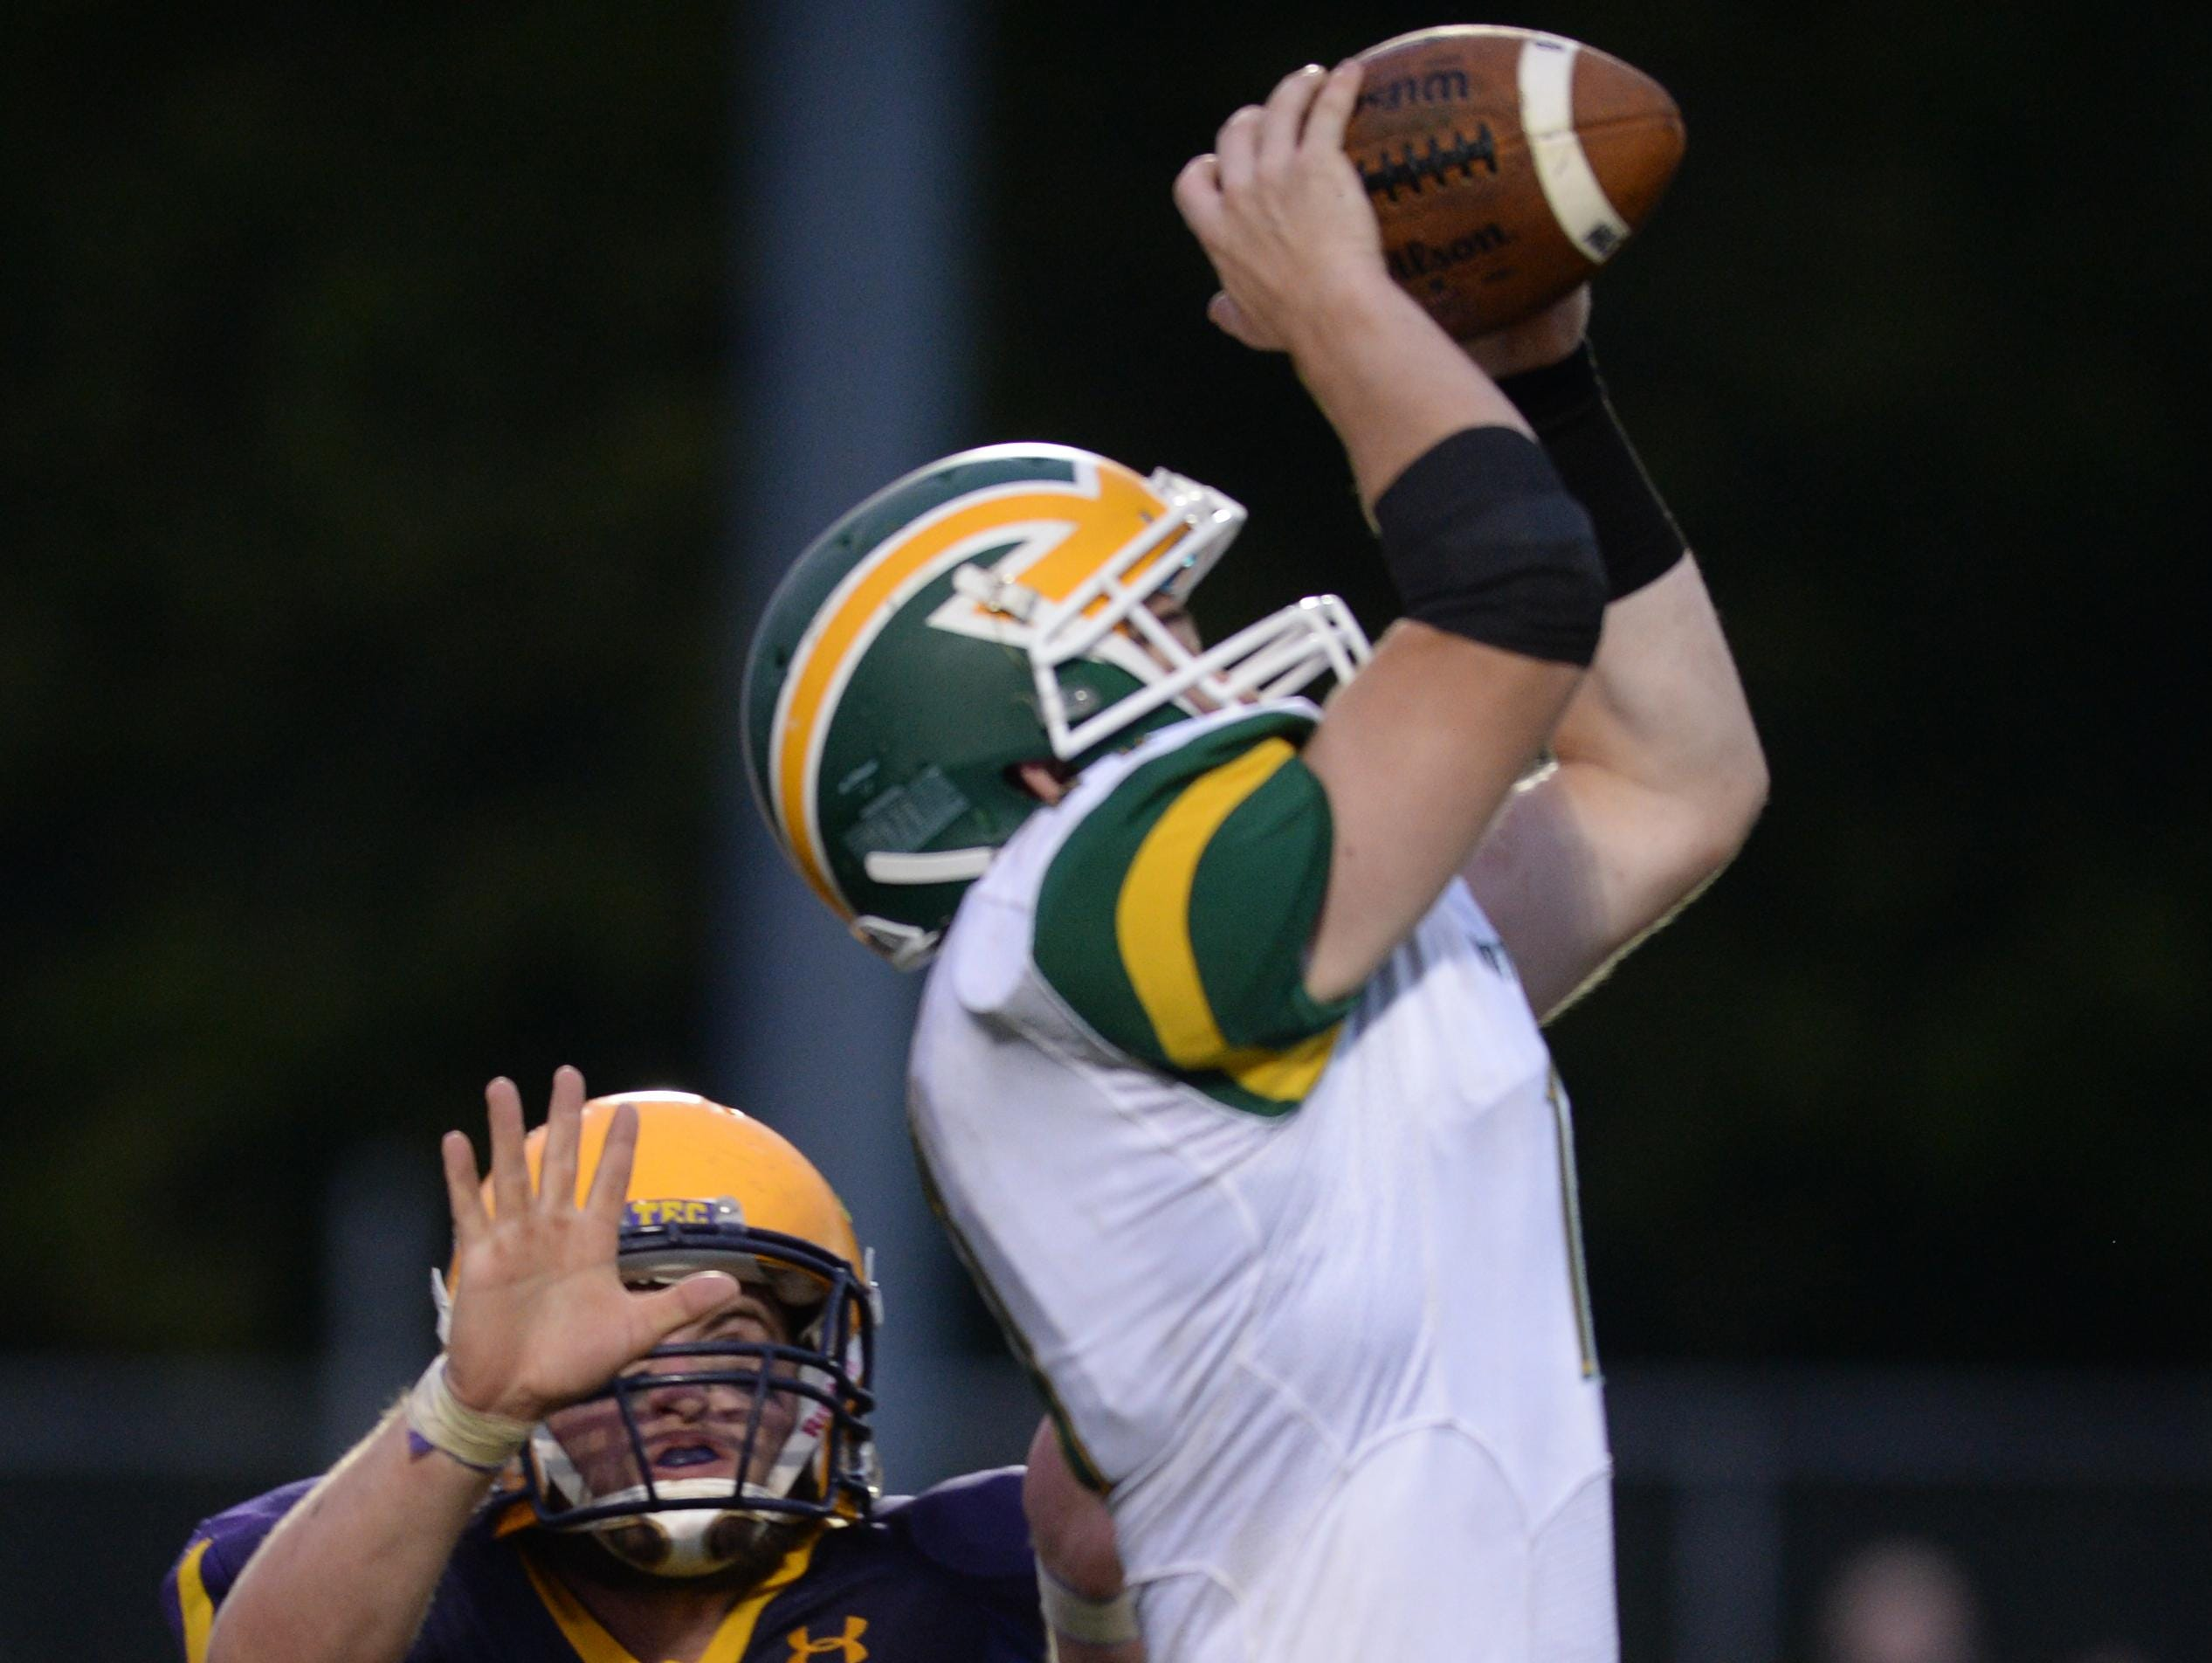 Northeastern's Jacob Slinker intercepts a pass intended for Hagerstown's Dylan Woolard during a football game Friday, Sept. 11, 2015, in Hagerstown.